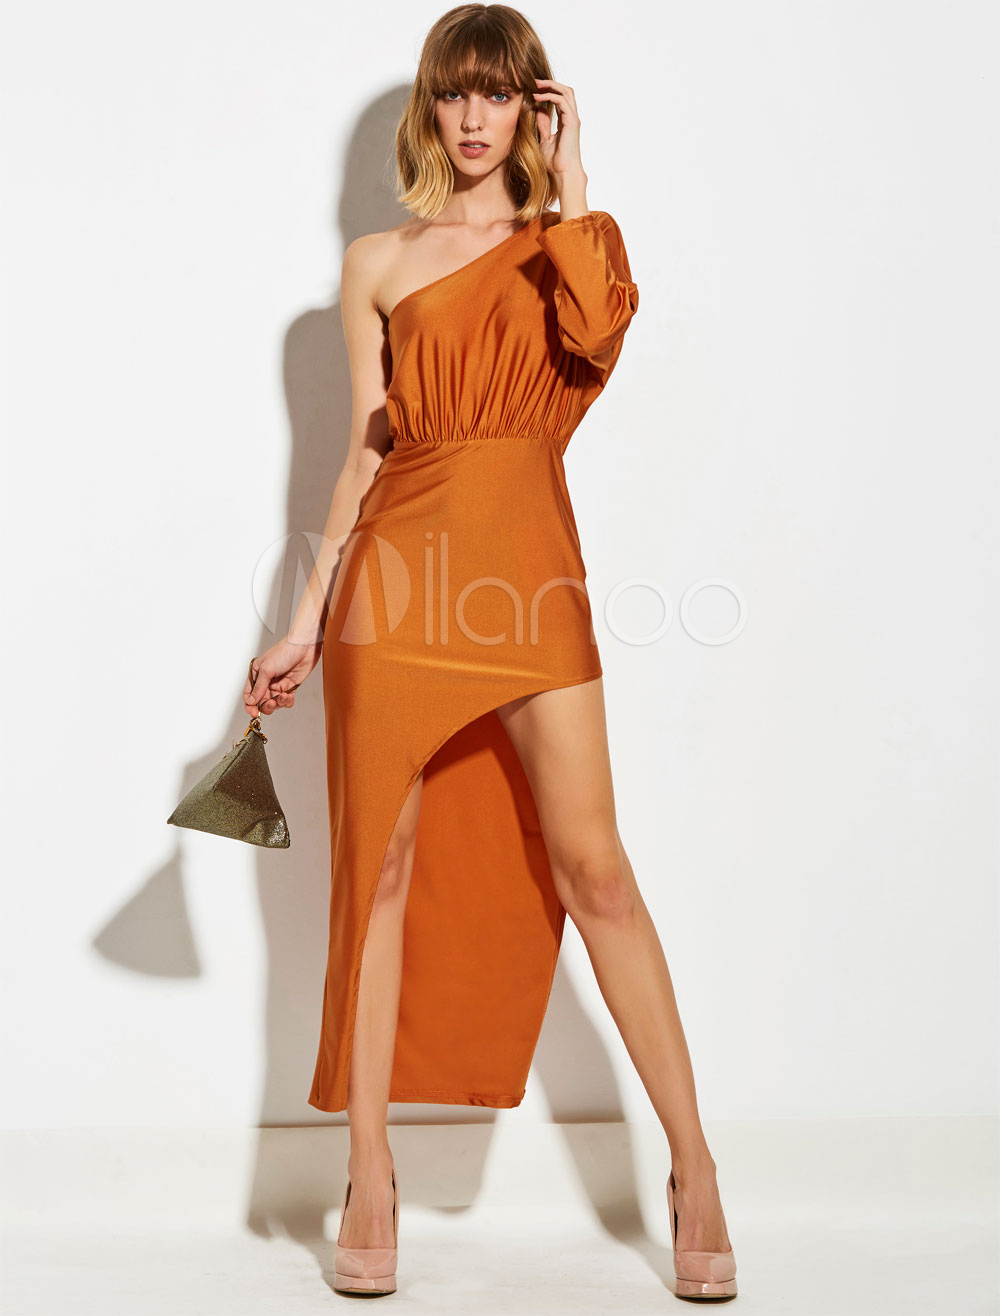 Buy Women Bodycon Dresses Long Sleeve One Shoulder Draped Asymmetrical Orange Red Maxi Dress for $35.99 in Milanoo store